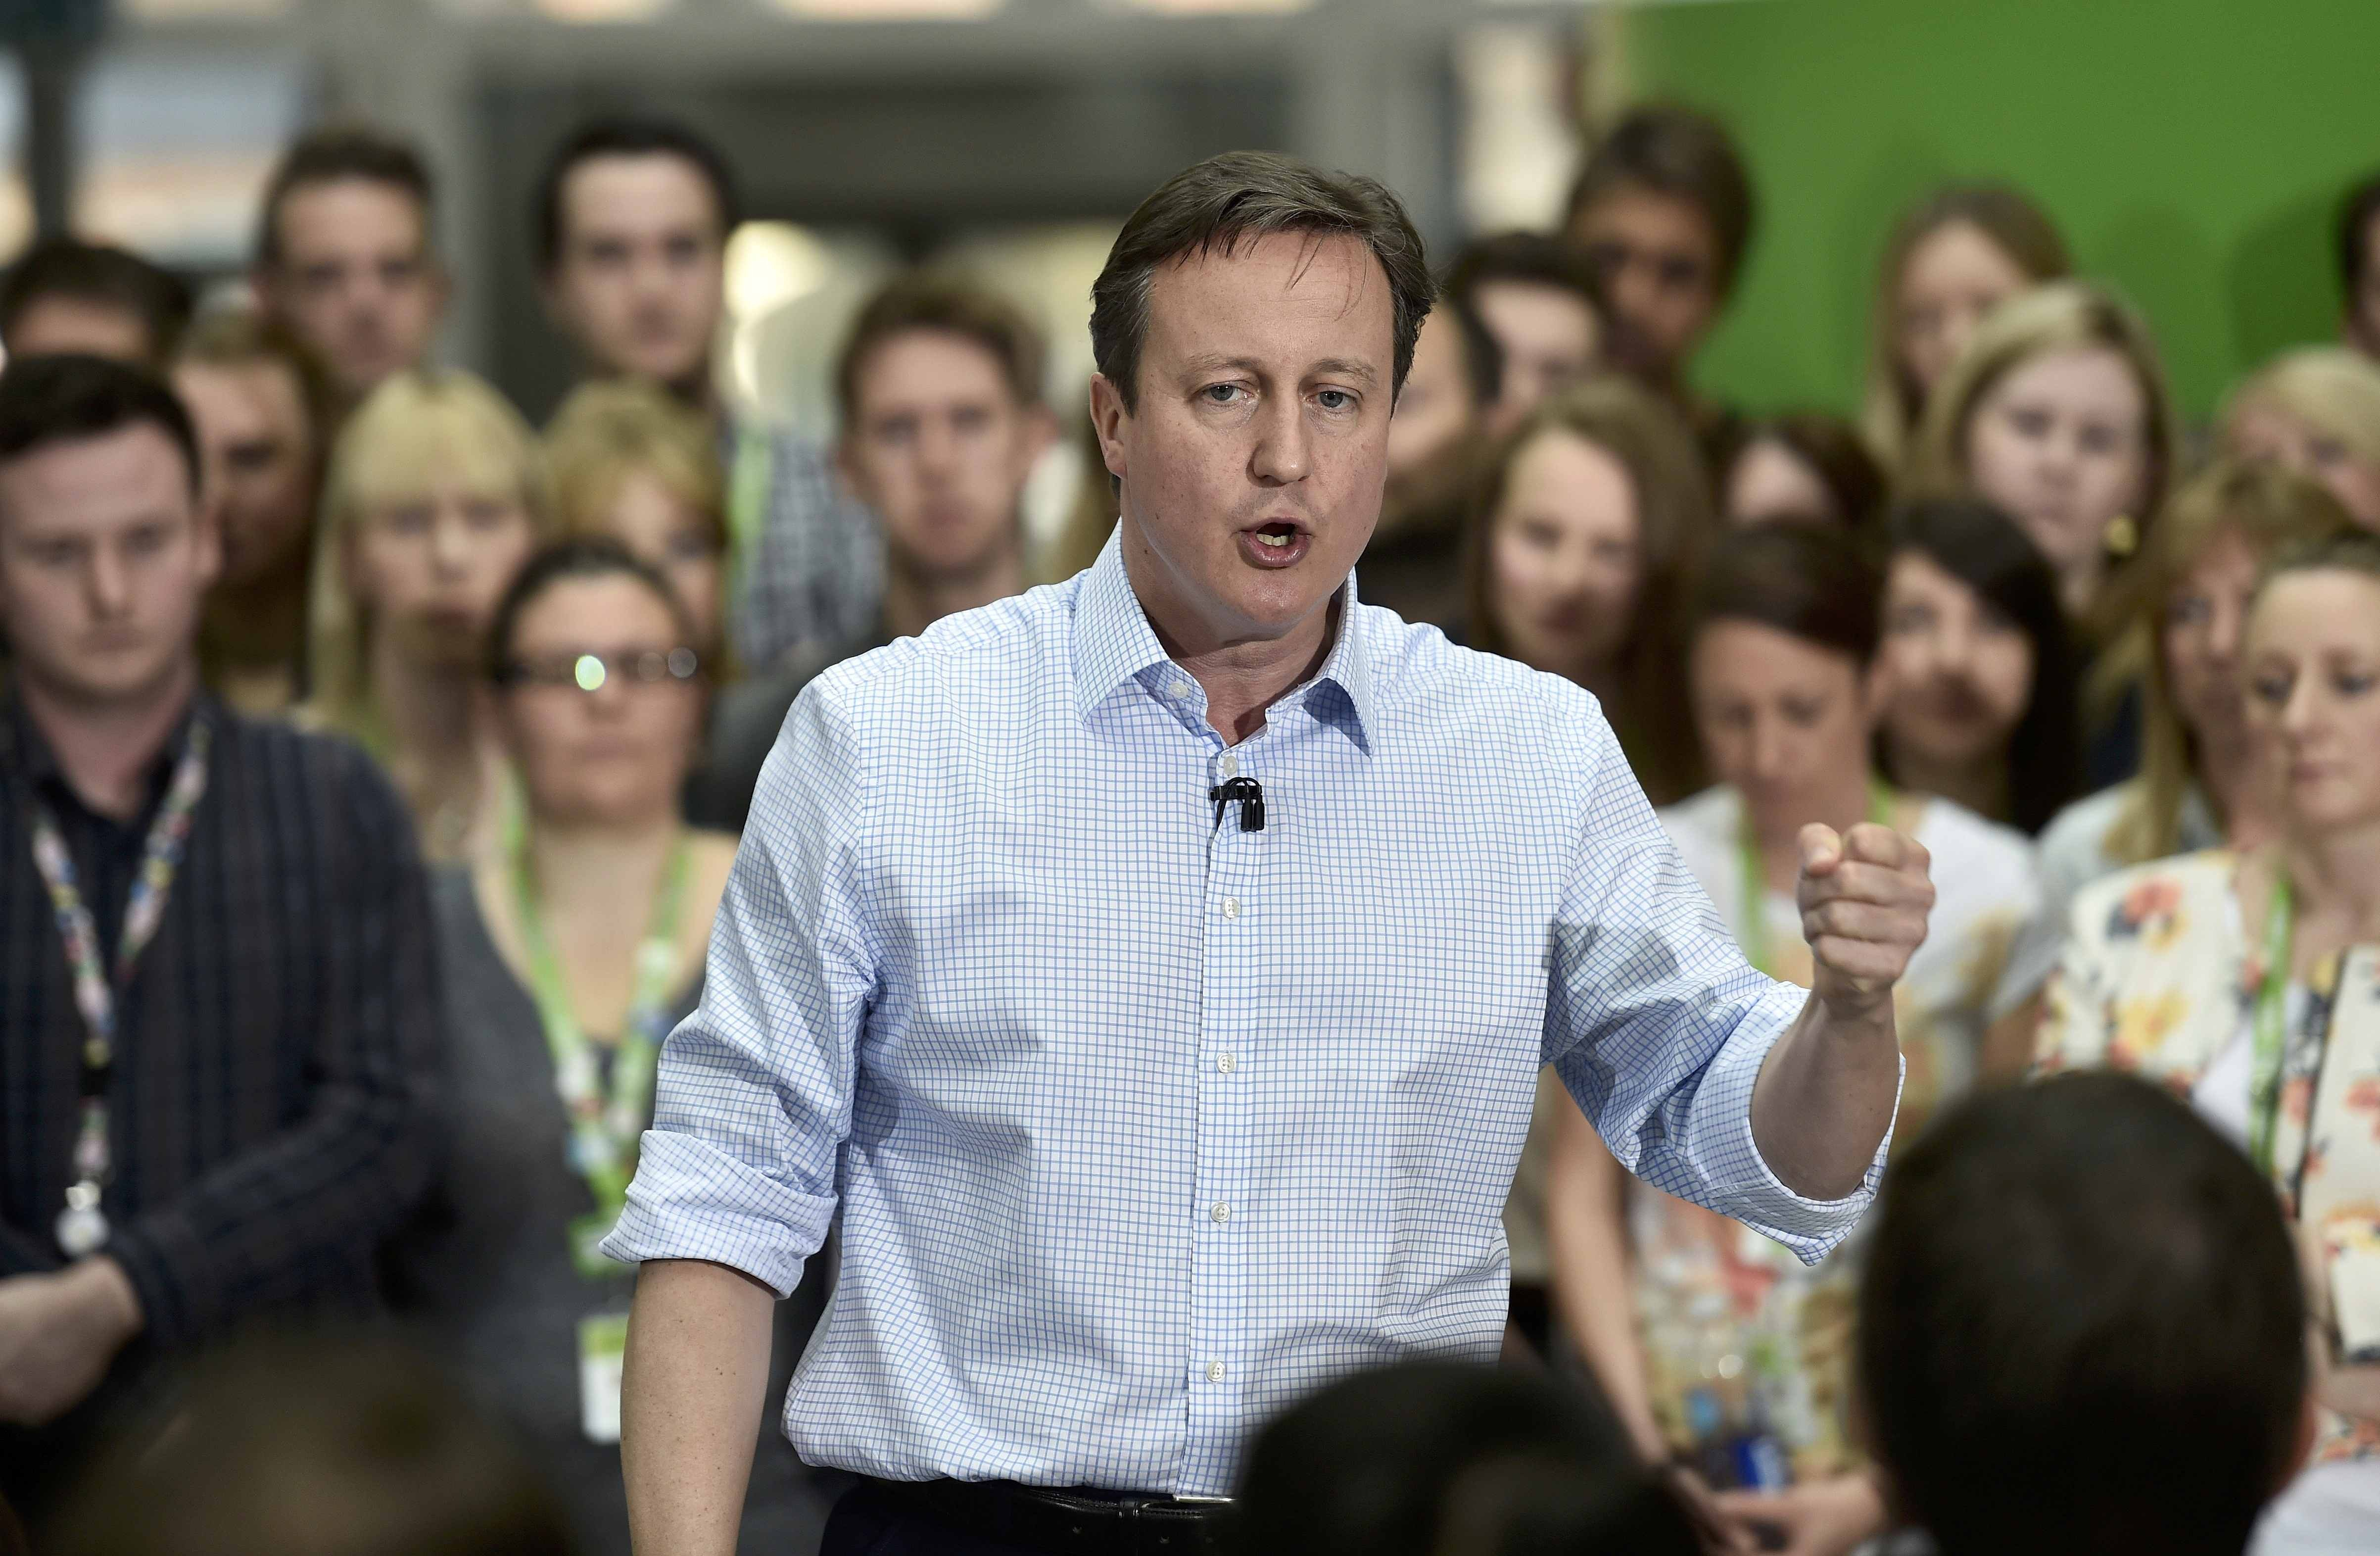 Cameron accidentally calls the election 'career defining', quickly correcting himself to say 'country defining'